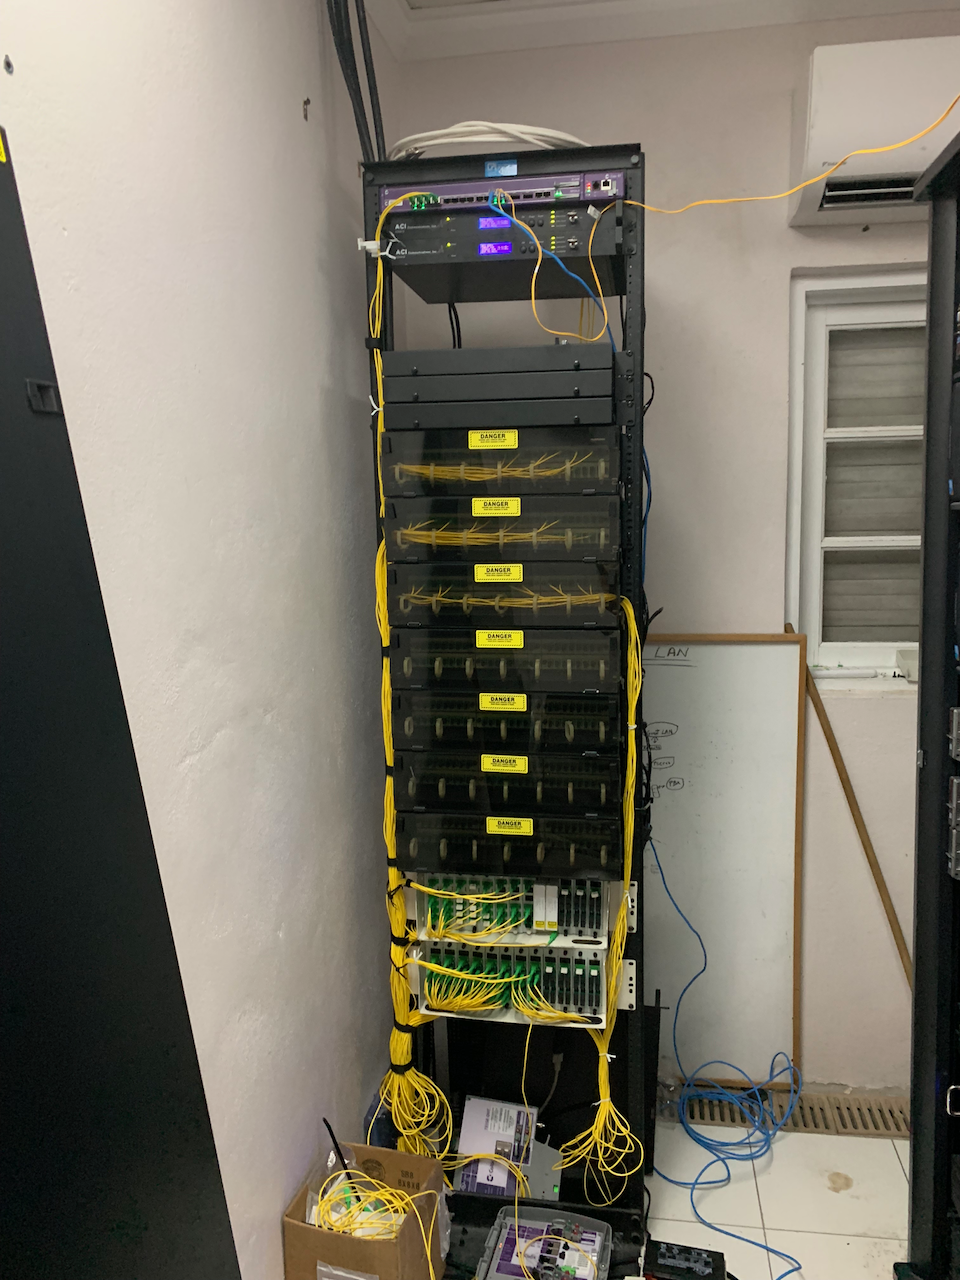 The GPON Fiber Optic system is designed so all Guest Rooms are available for cross connection in one room - this allows quick 'hotswap' to alternate cable paths in case of signal issues.